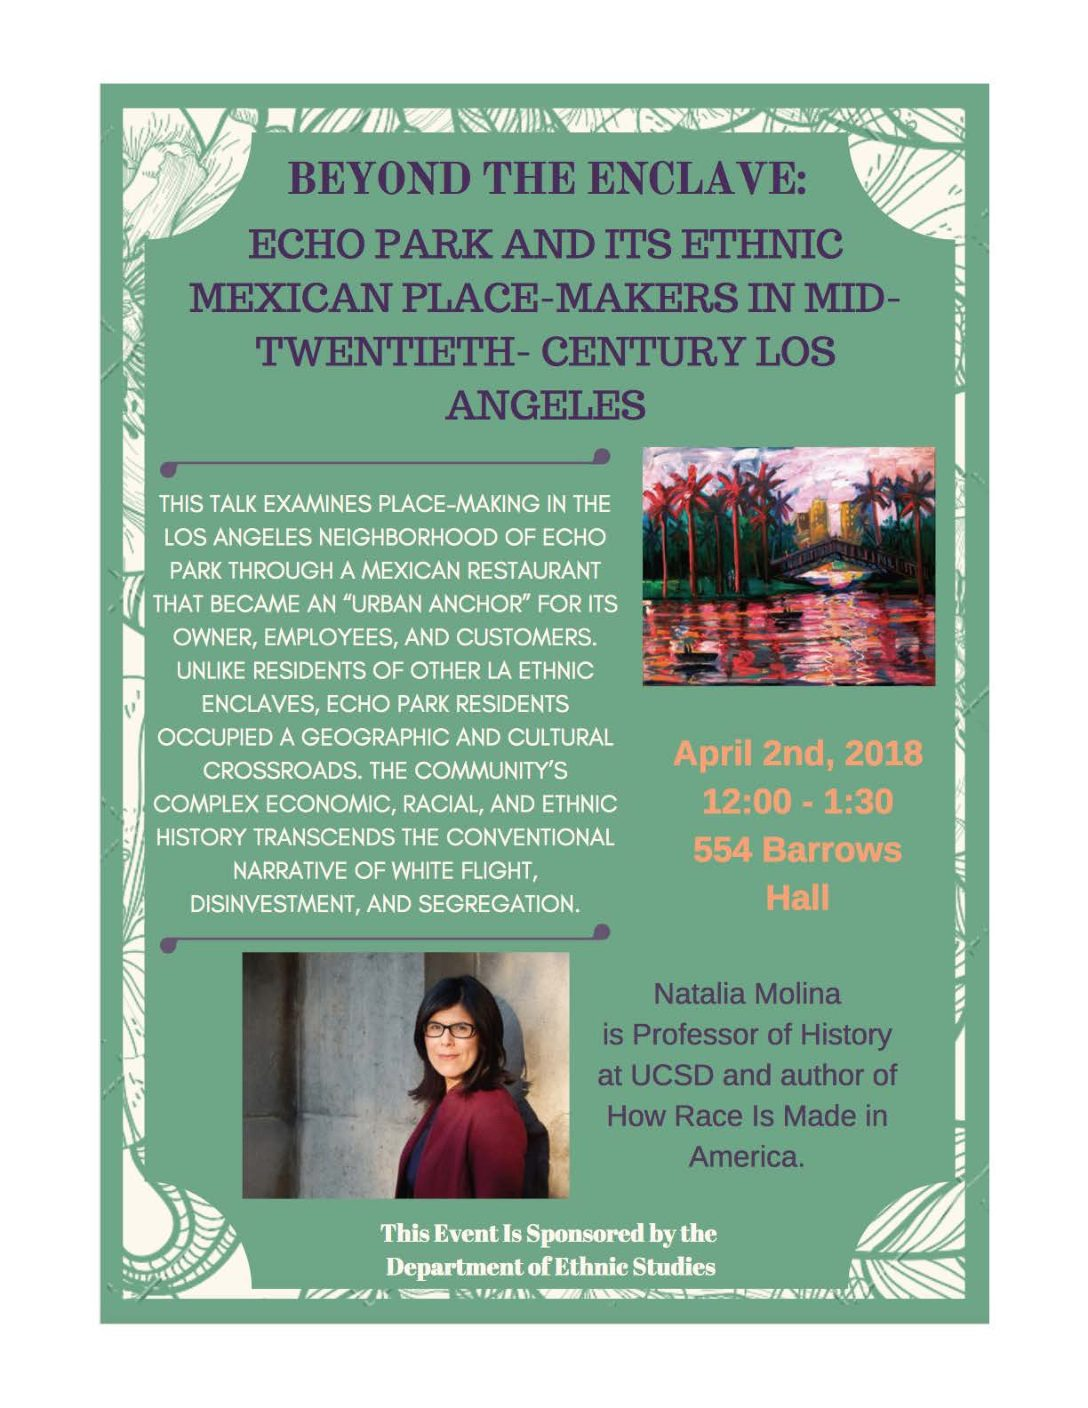 Beyond the Enclave: Echo Park and its Ethnic Mexican Place-Makers in Mid-Twentieth-Century Los Angeles